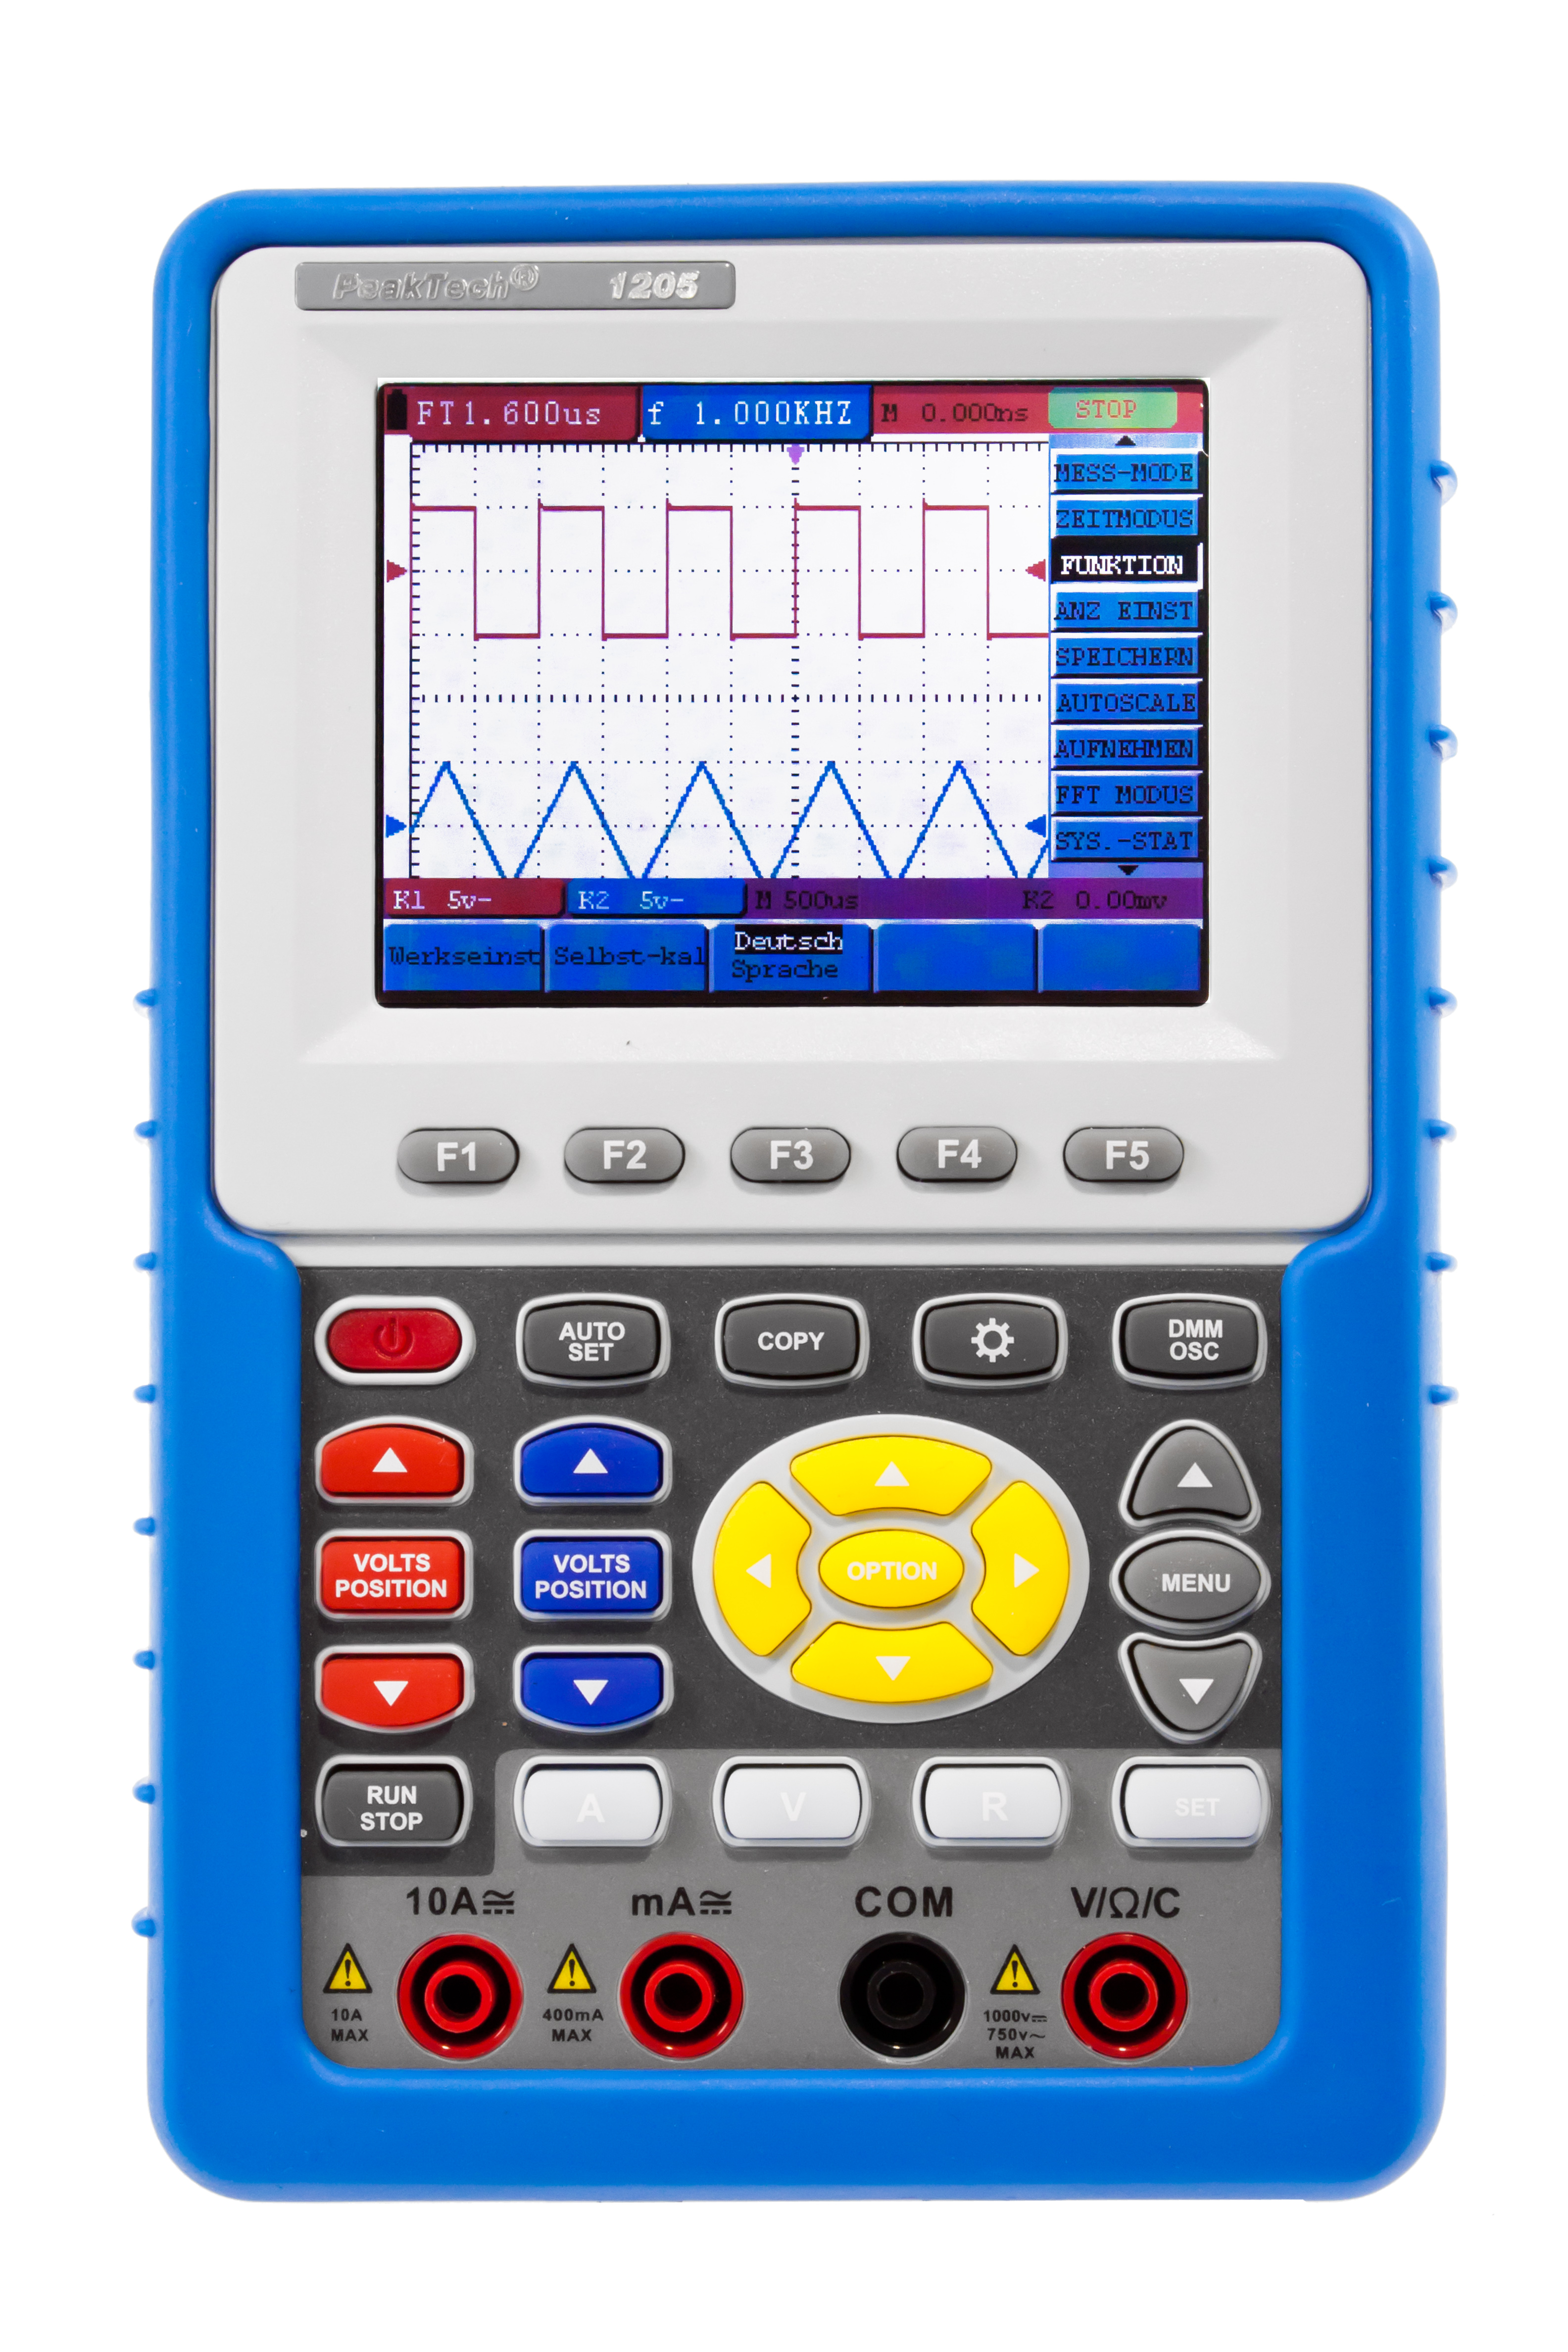 «PeakTech® P 1205» 20 MHz / 2 CH, 100 MS / s handheld oscilloscope